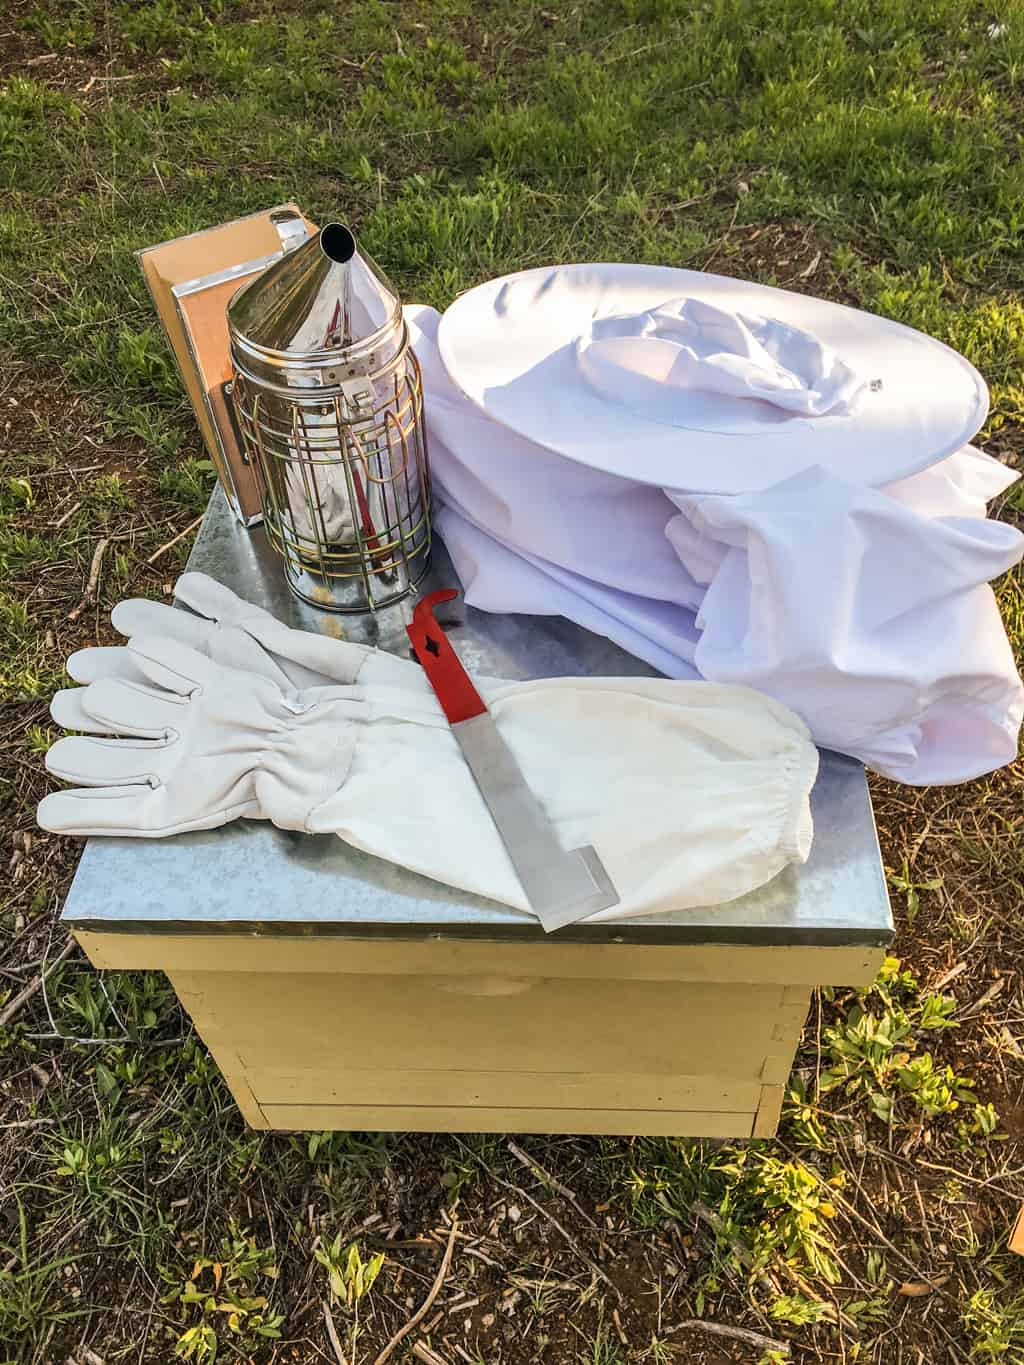 Are you interested in adding bees to your homestead? We are discussing beehives and what you need to get ready for bees on your property. Beginner Beekeeping | Building Beehives | New Beehive